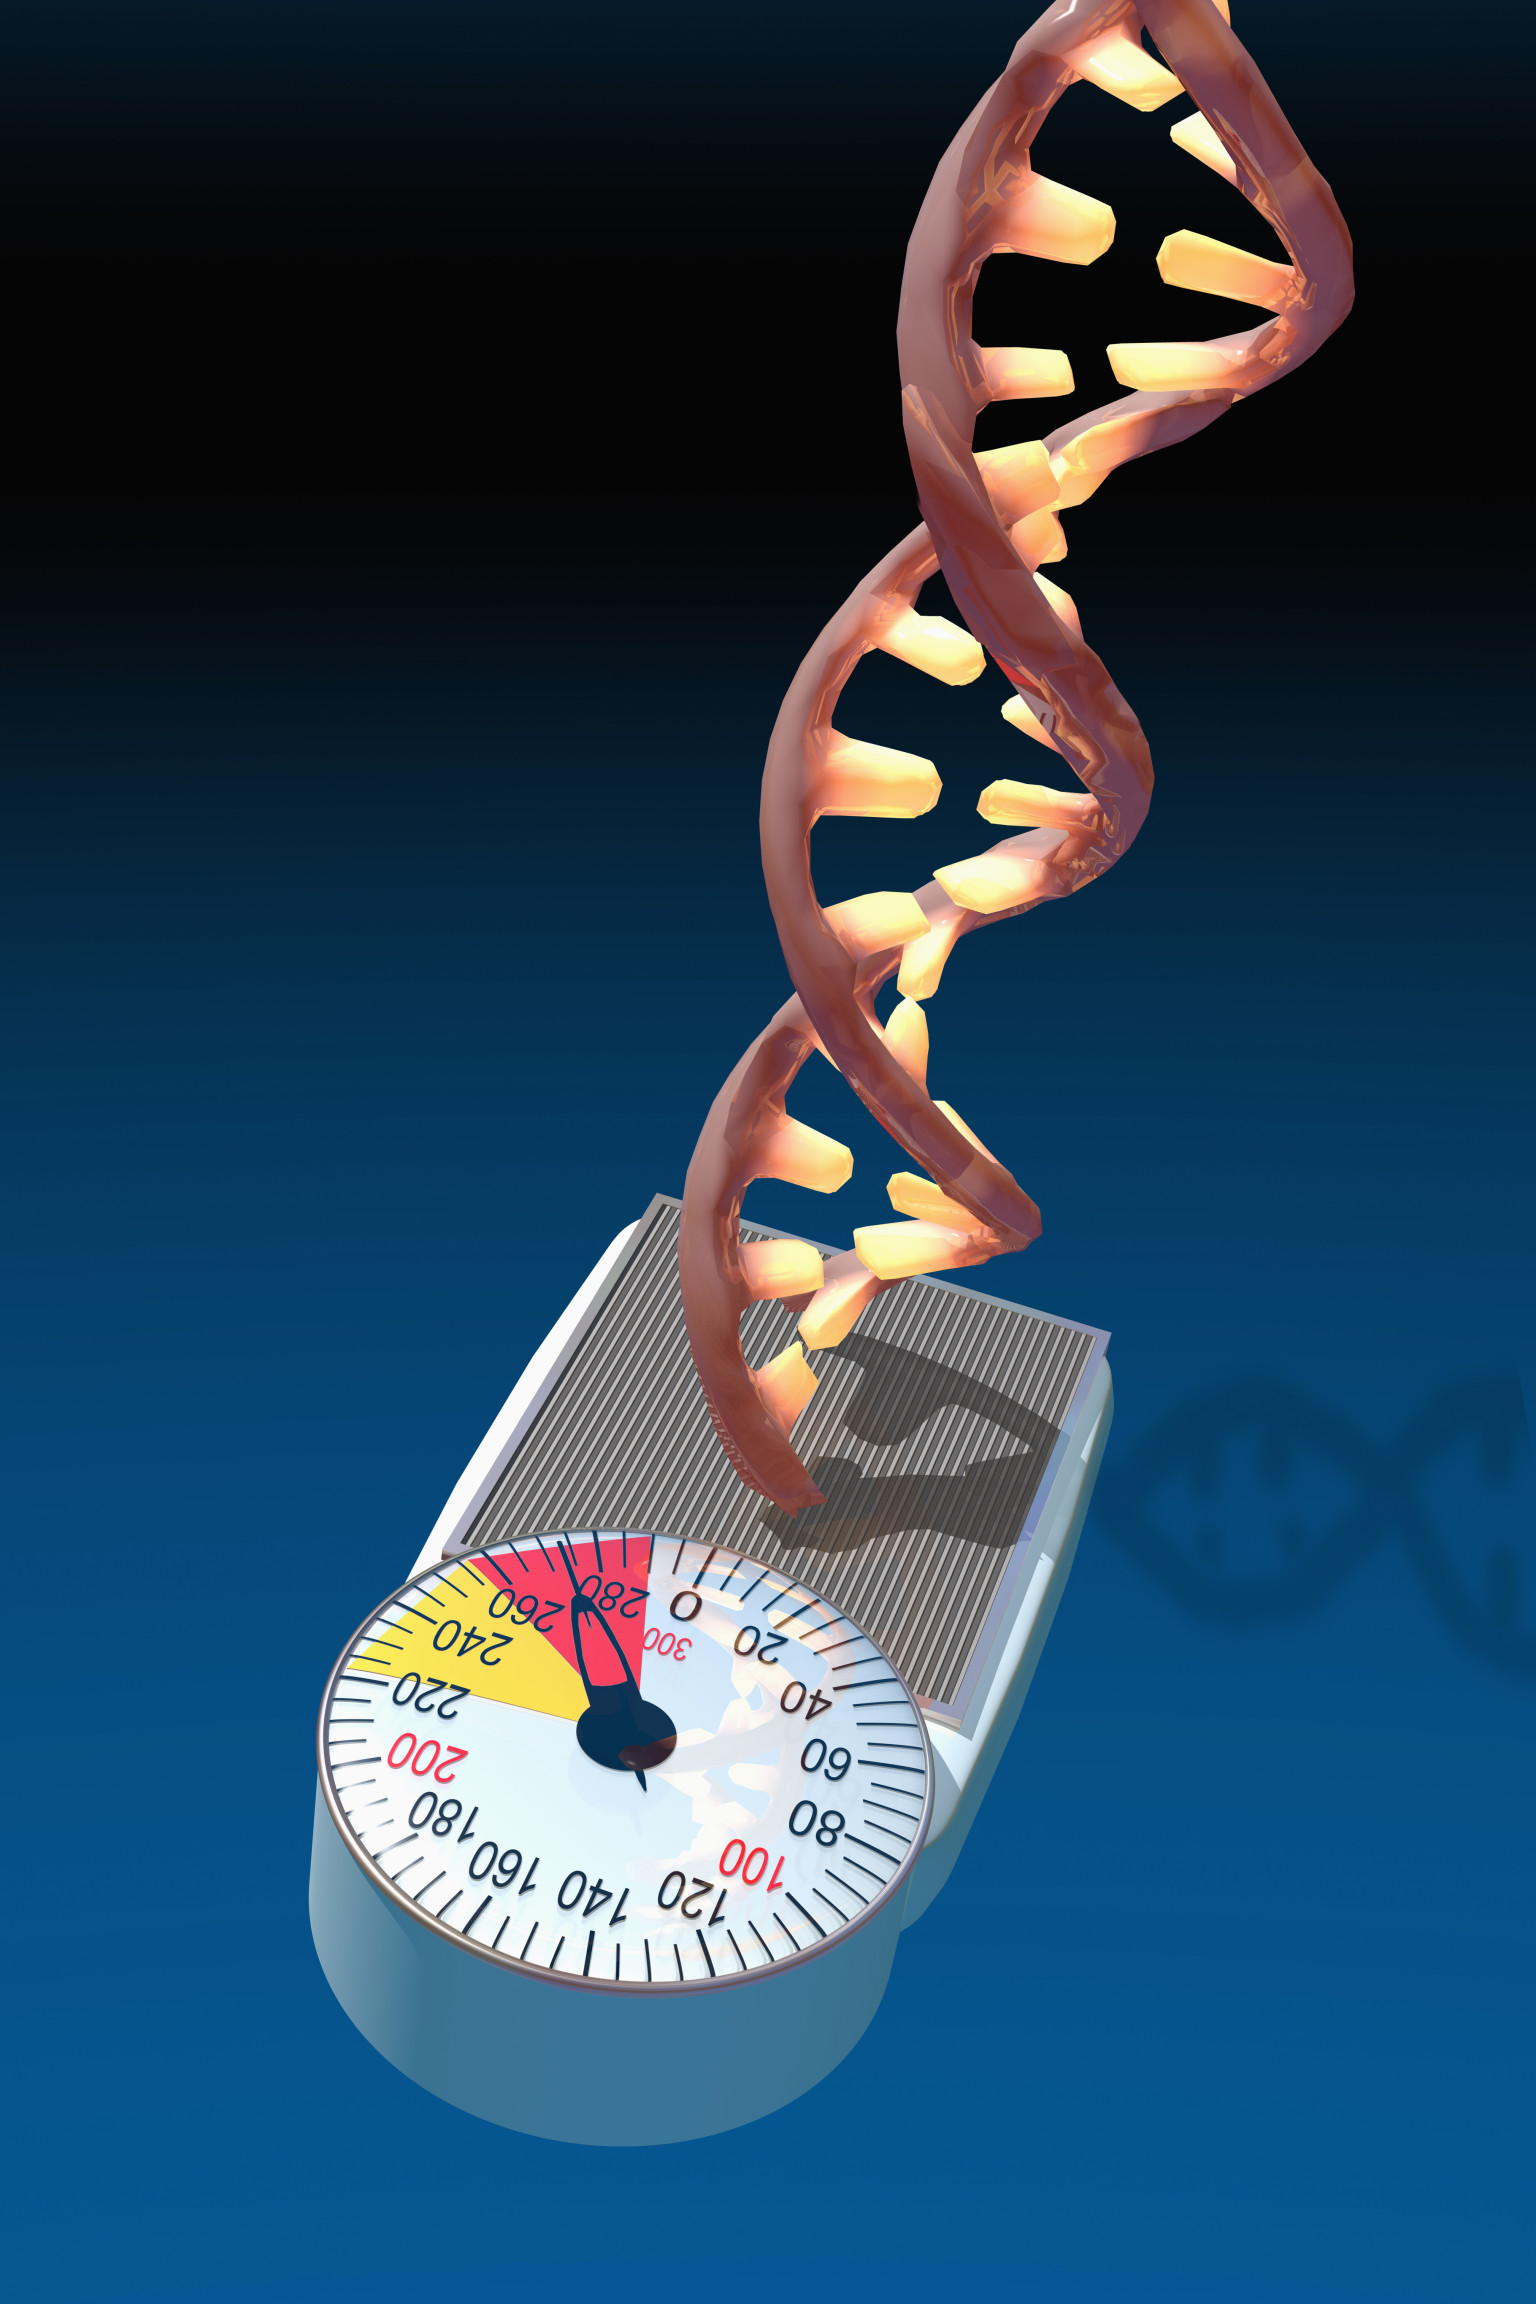 Biomedical illustration of a DNA molecule on a bathroom scale illustrating the concept of a fat gene as a genetic predisposition toward obesity.